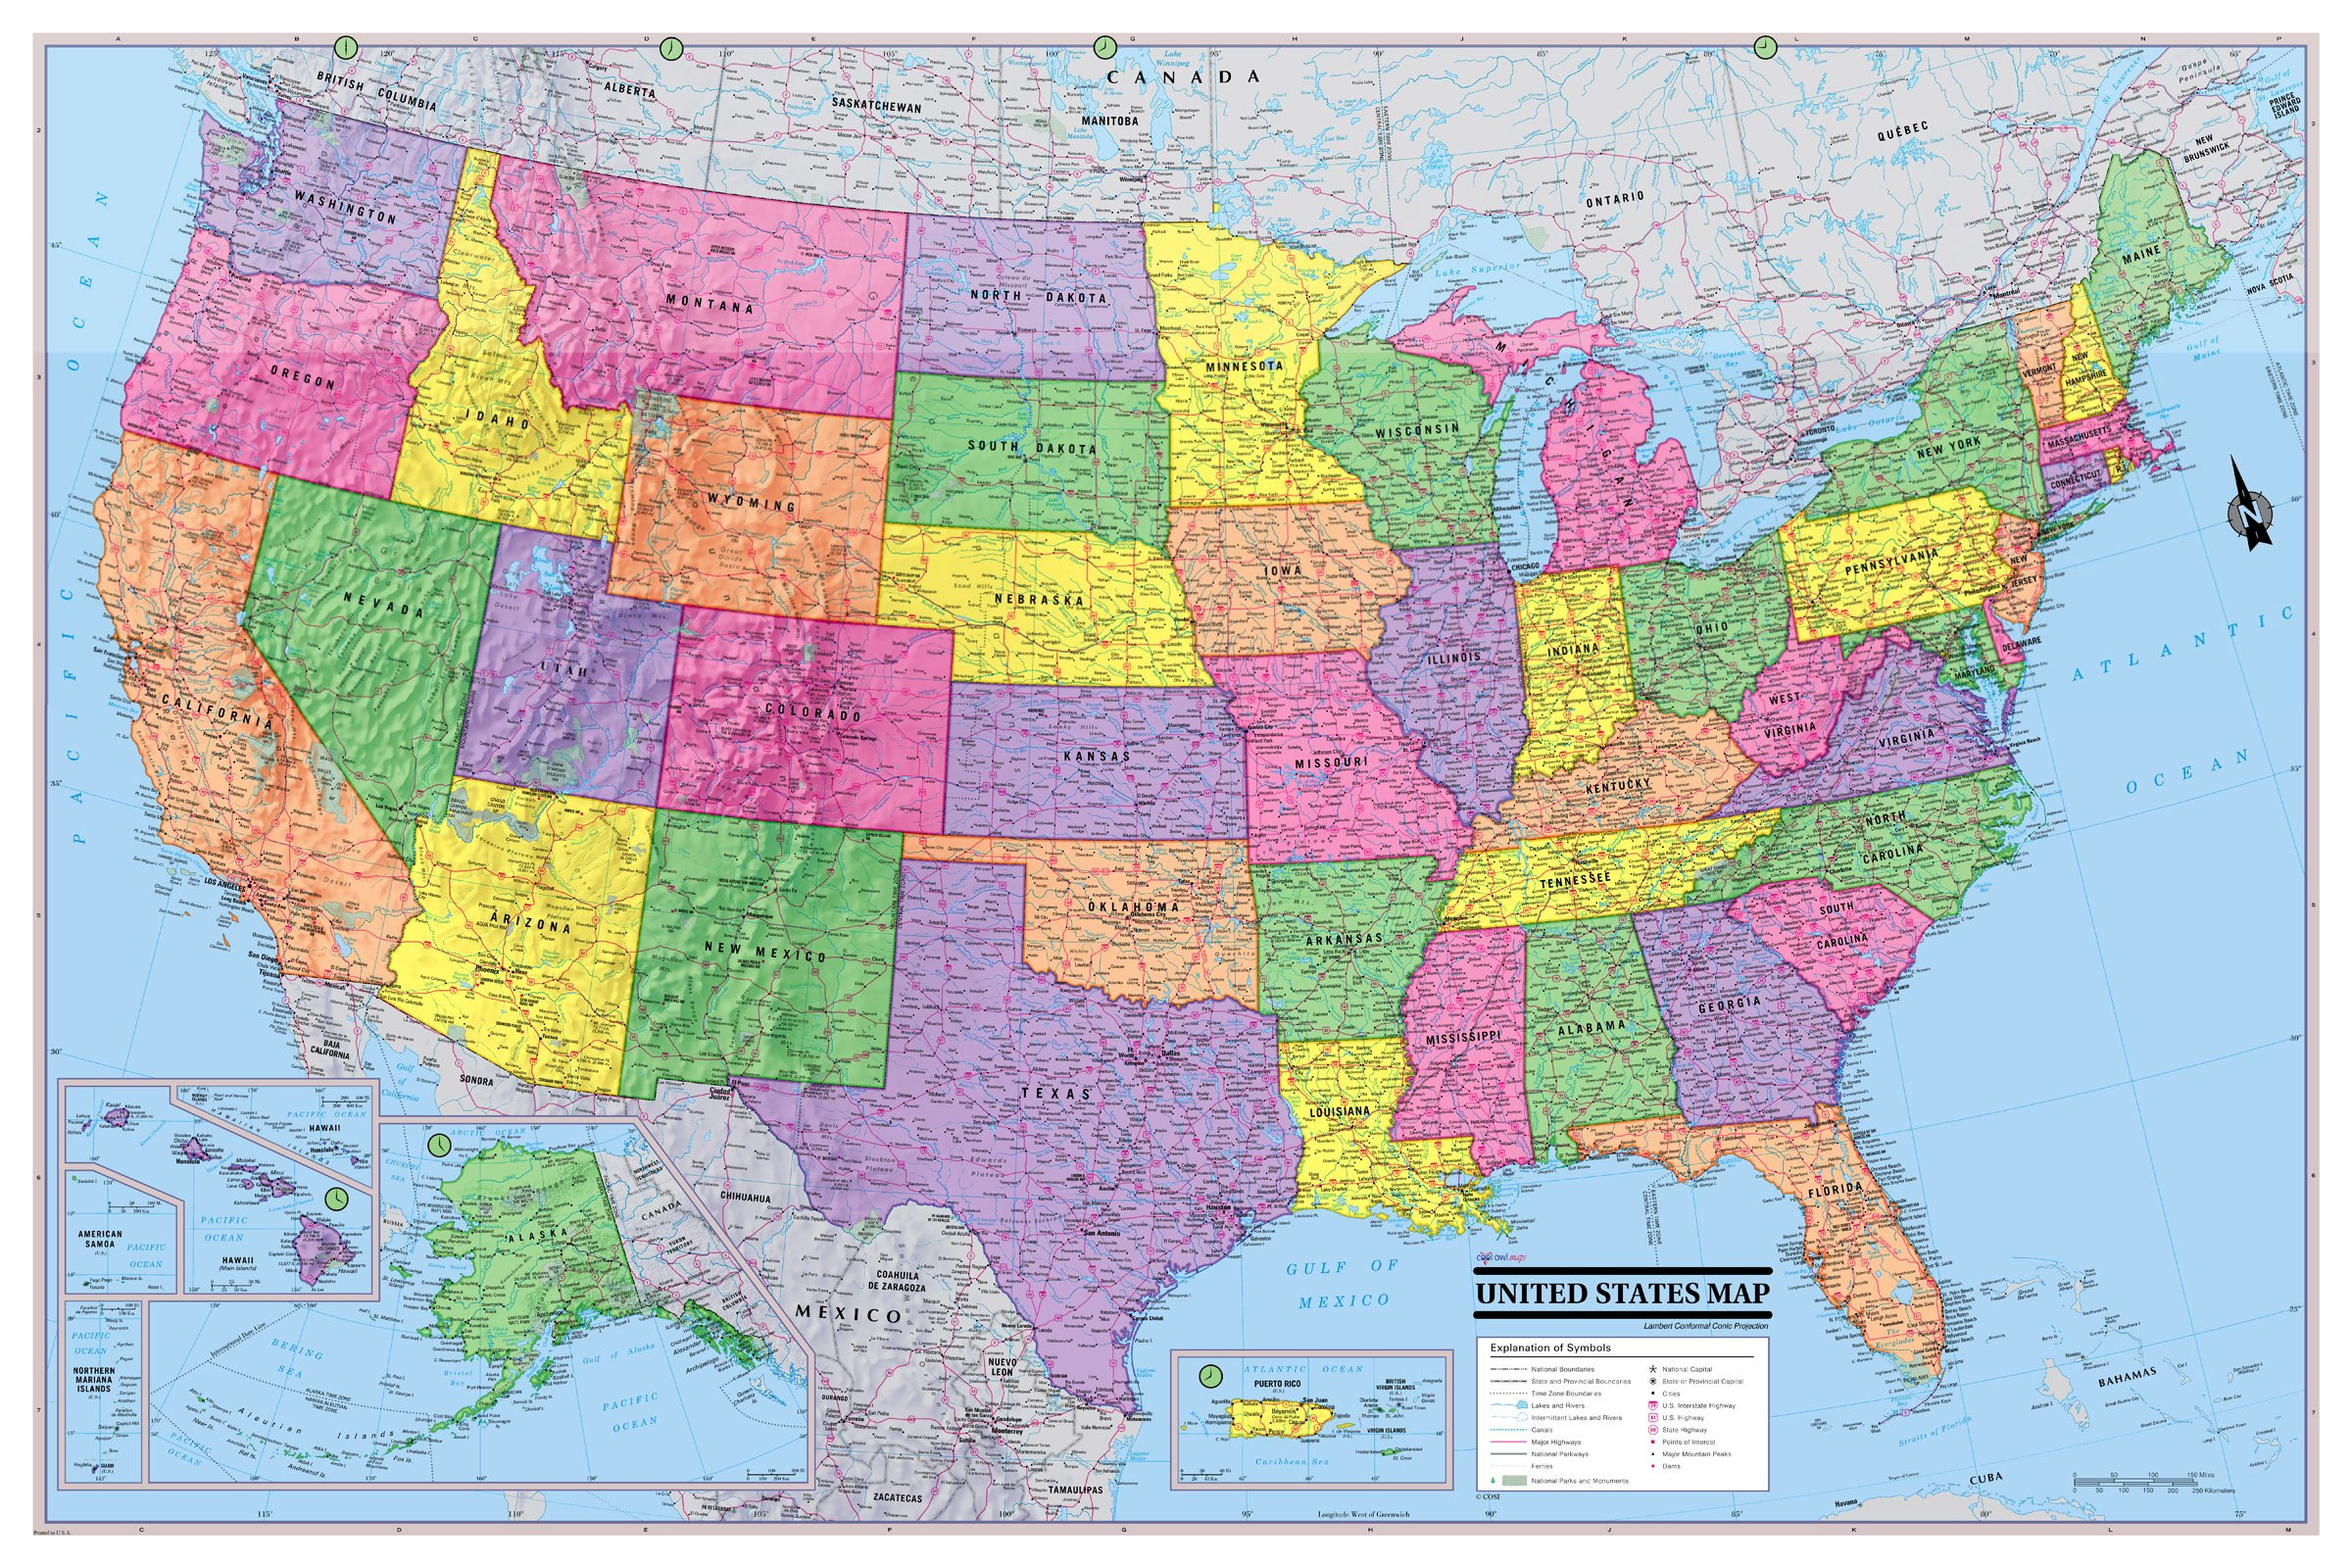 United States 3D Wall Map Poster 36x24 Rolled Laminated - 2018 by Cool Owl Maps (Image #1)